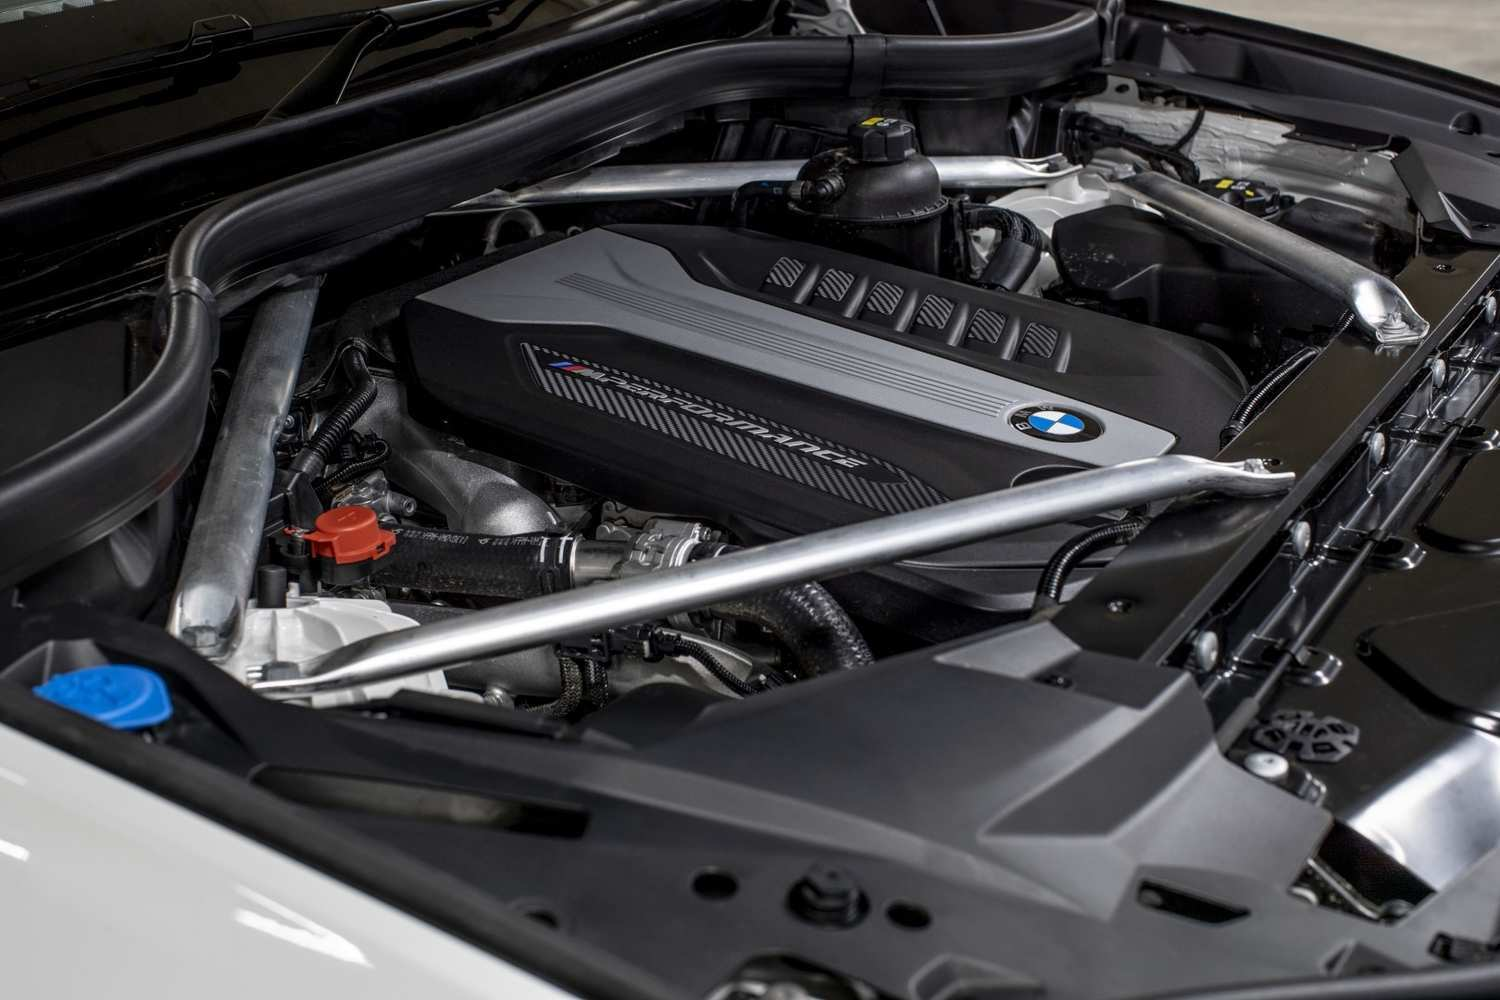 83 New 2019 Bmw X5 Engines Model